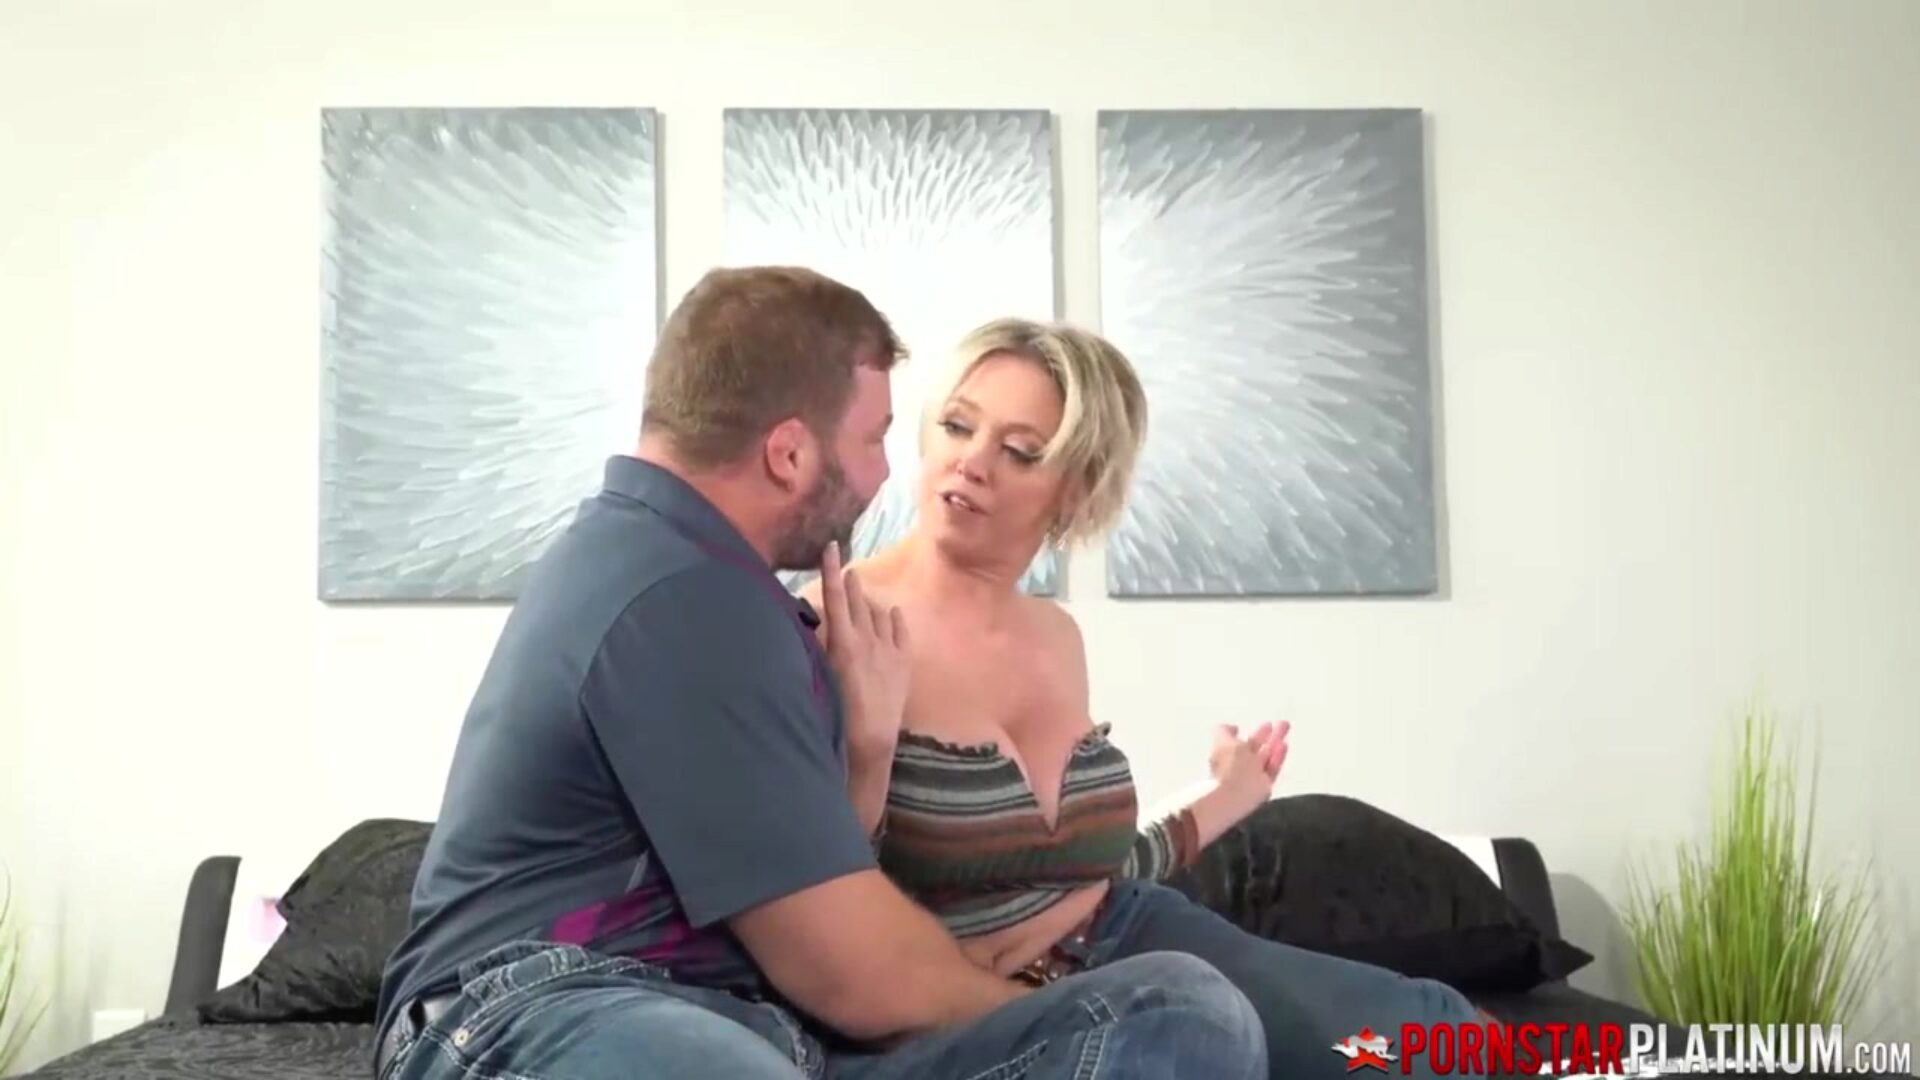 PORNSTARPLATINUM Bombshell mother I'd like to fuck Dee Williams Banging Cowgirl